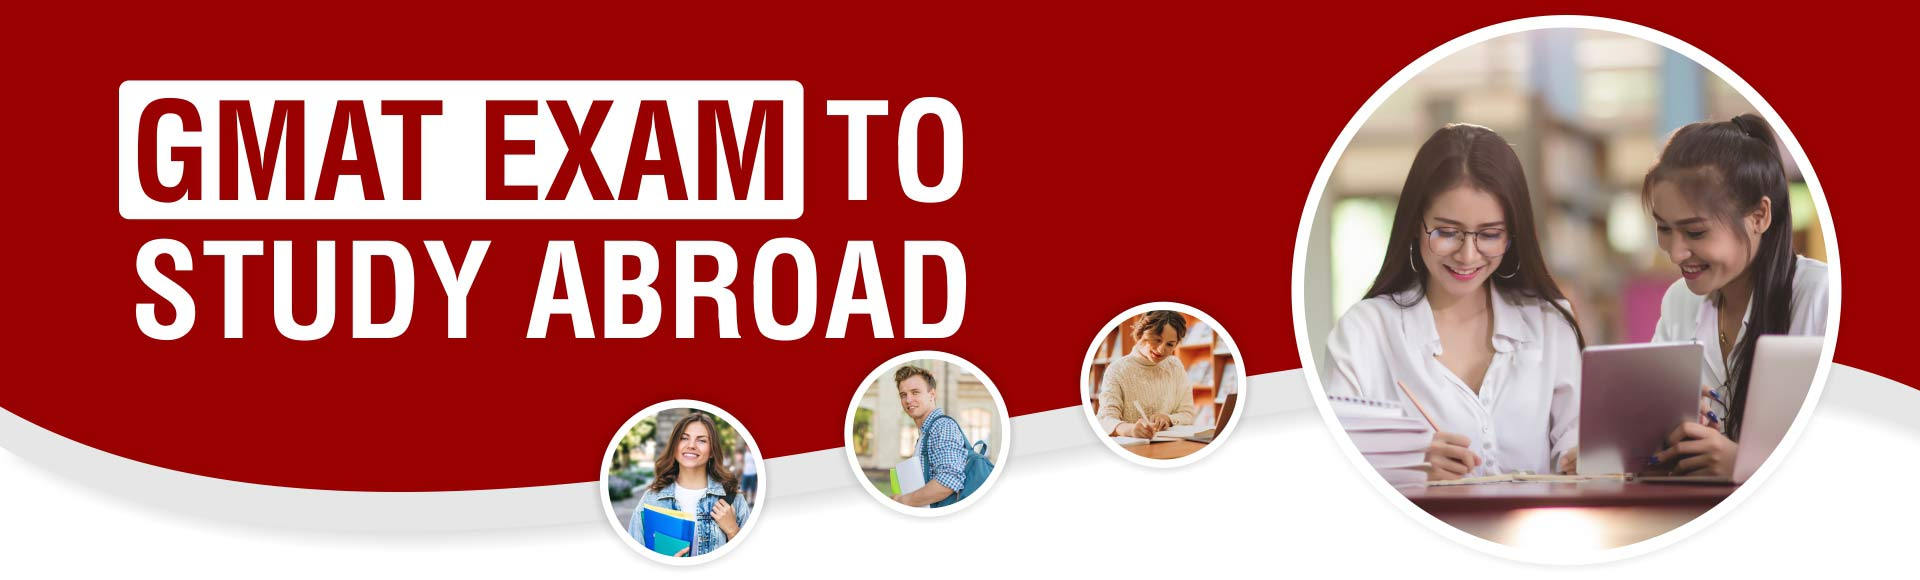 GMAT Exam to Study Abroad